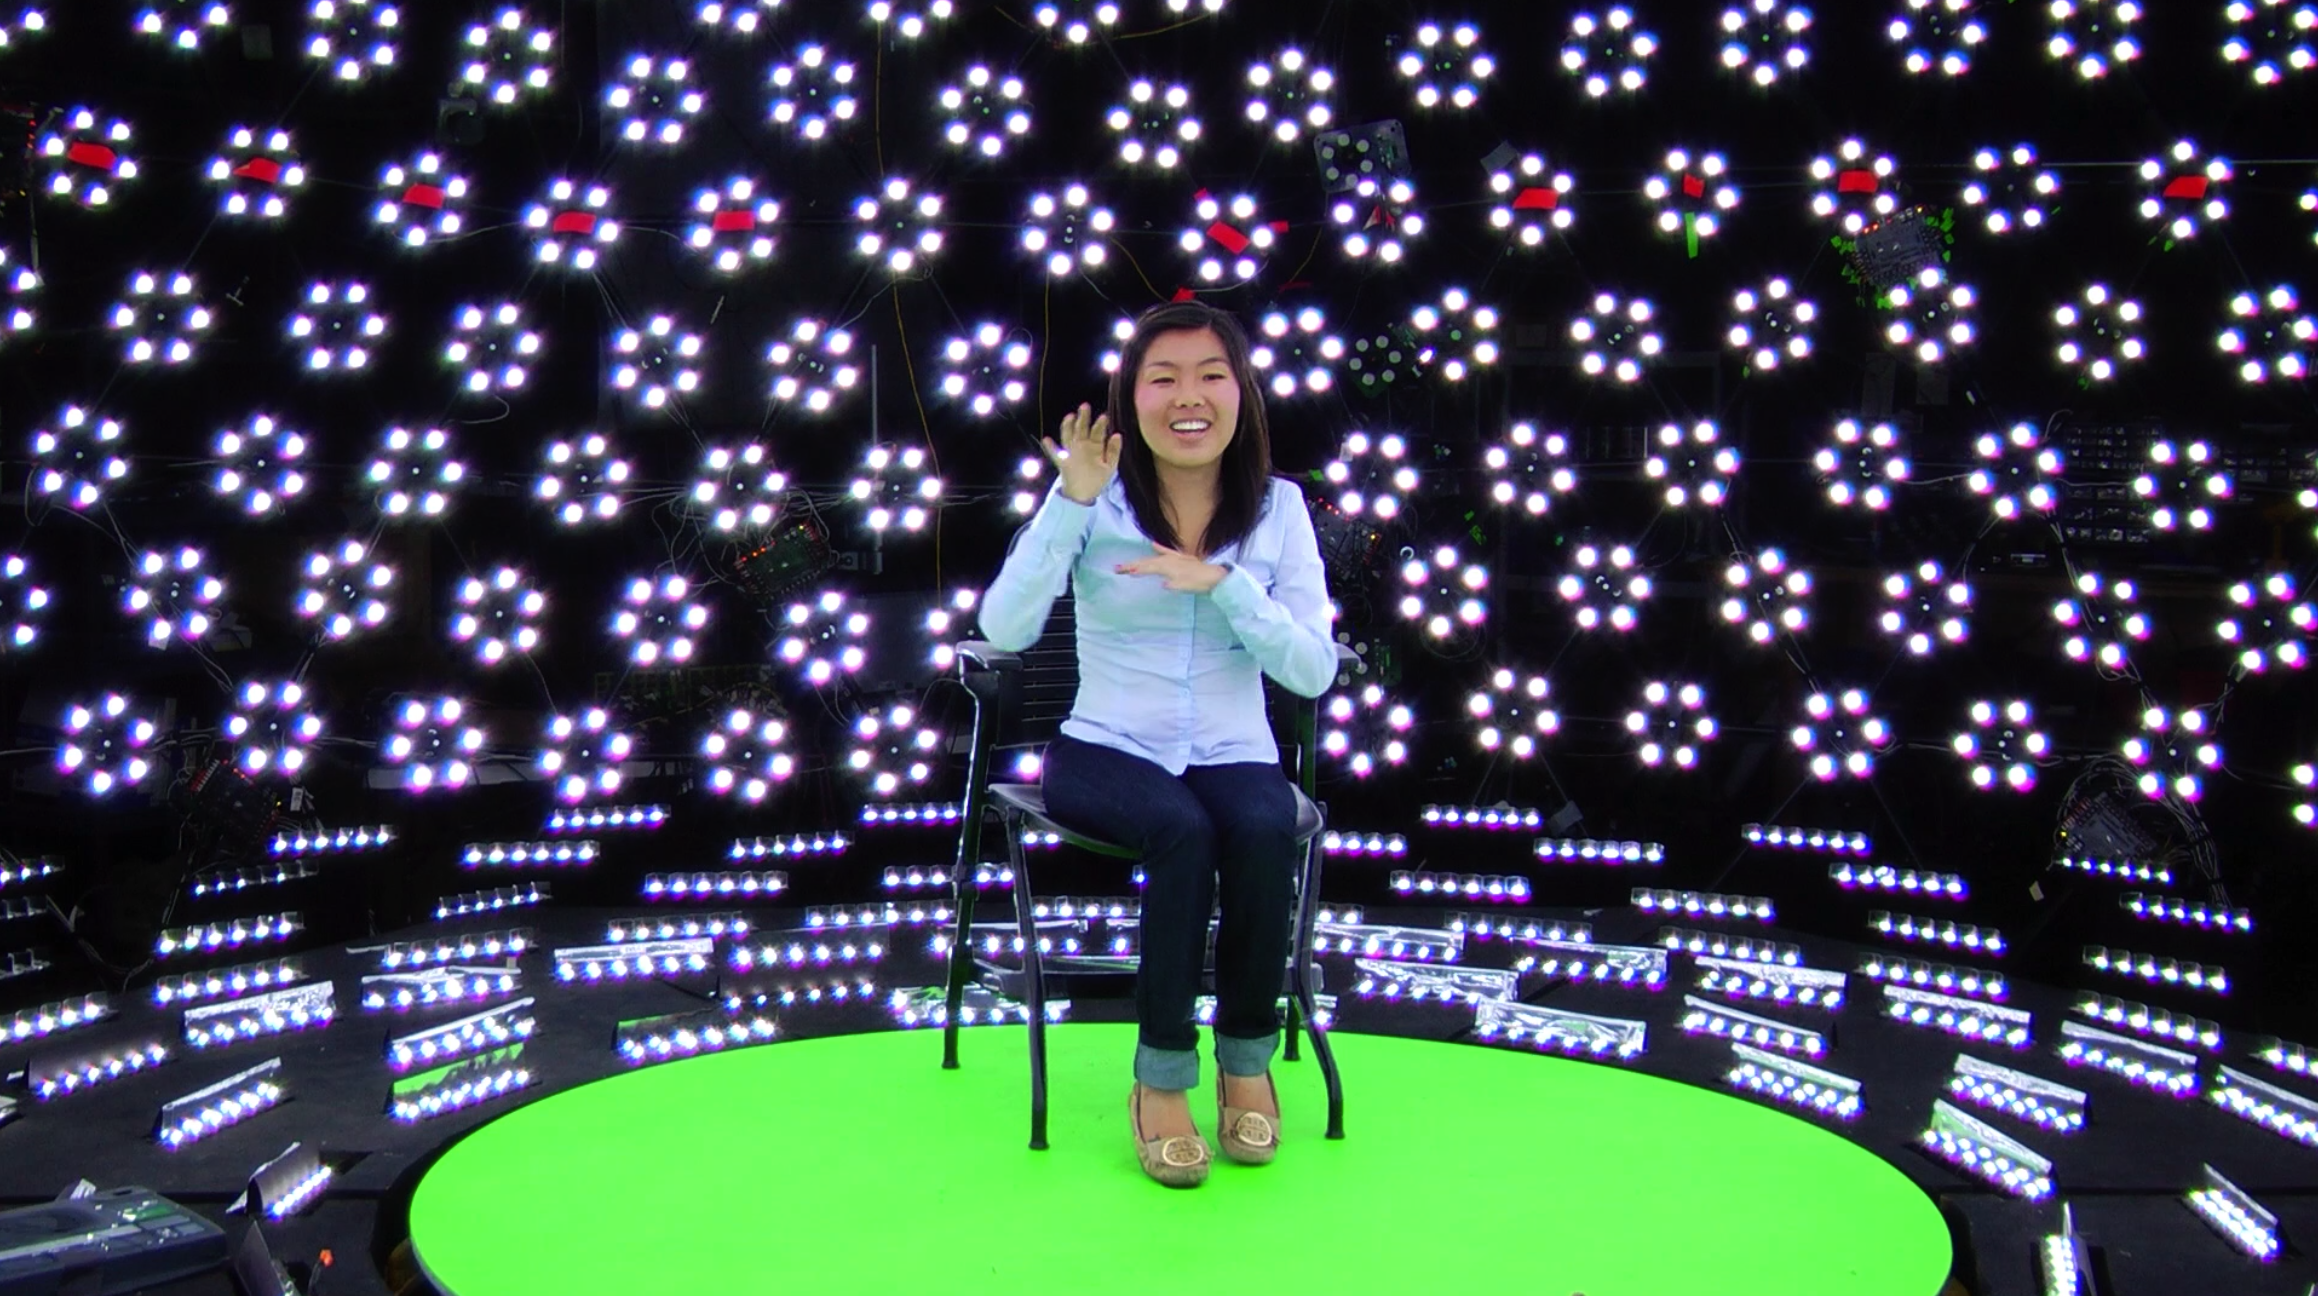 1.Kaitlin Yang on the light stage made by Paul Debevec (Academy member, Sci-Tech Awards Recipient) at the USC Institute for Creative Technologies.